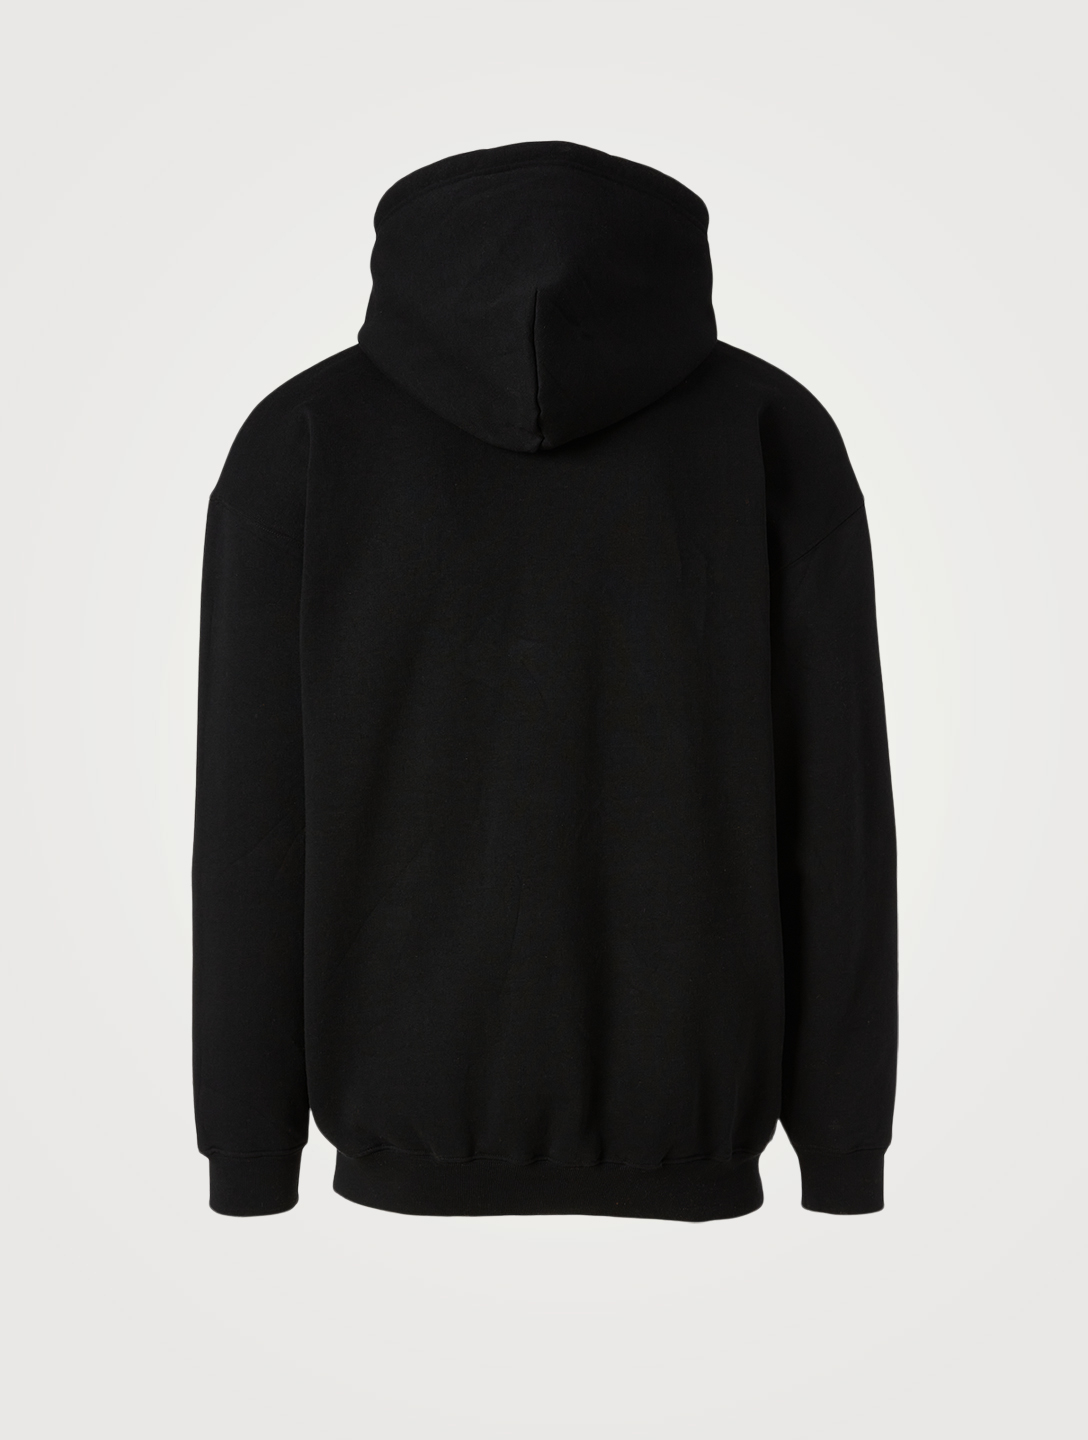 BALENCIAGA Languages Cotton-Blend Hoodie Men's Black